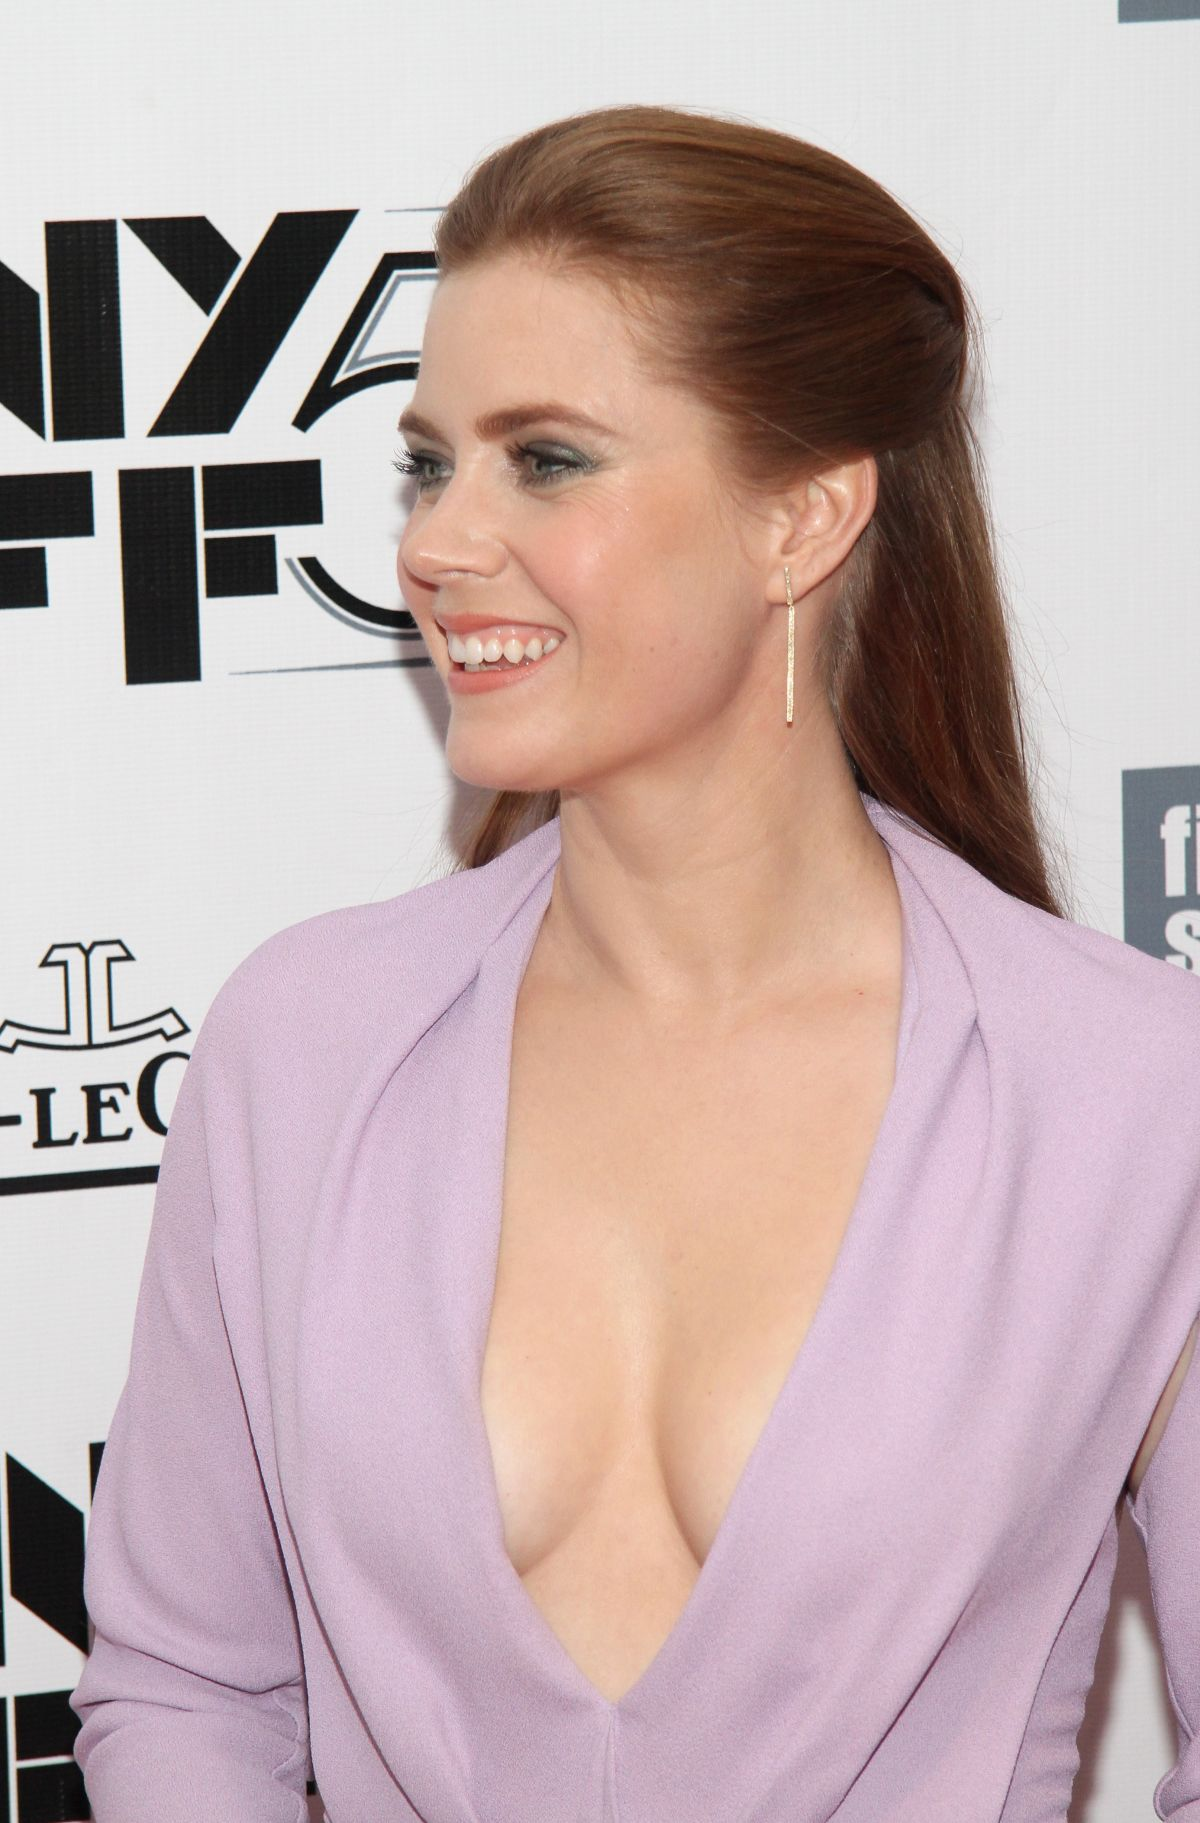 amy-adams-at-closing-night-gala-presentation-of-her-at-new-york-film-festival_10.jpg - 223.48 KB